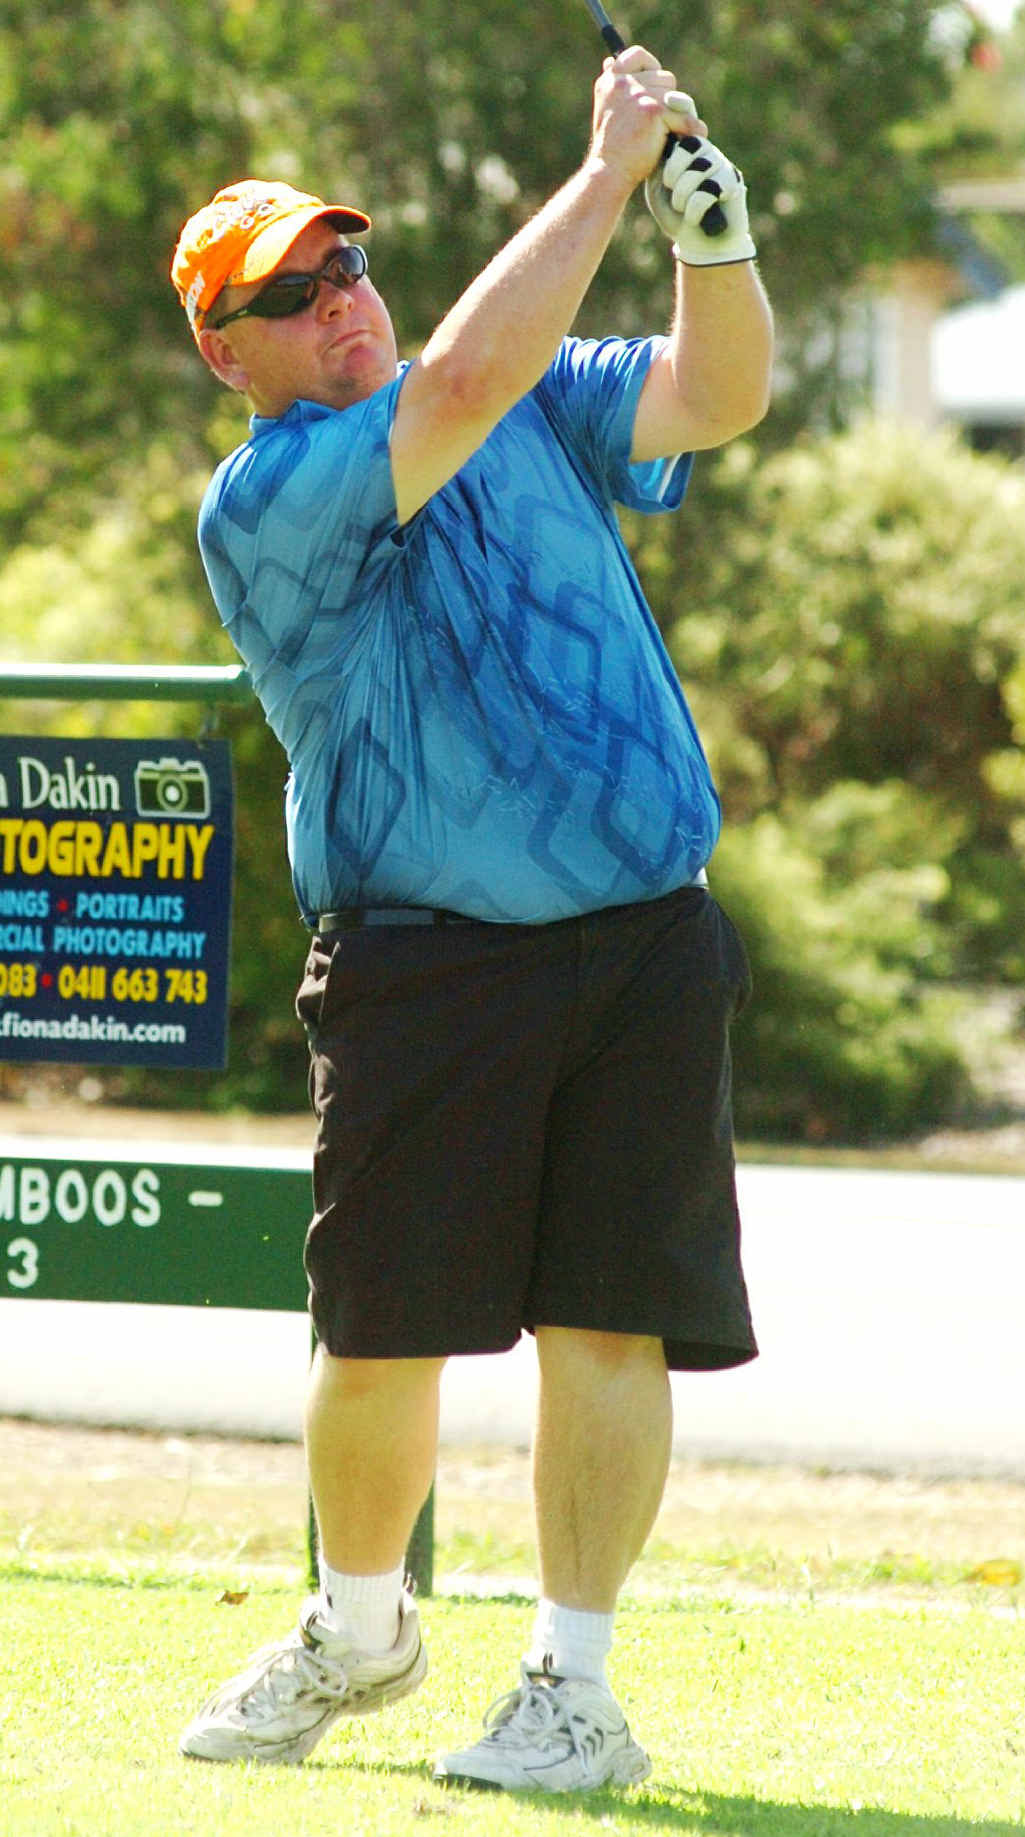 Big-hitting Daryn Brims carded his best round on his way to winning on Saturday.